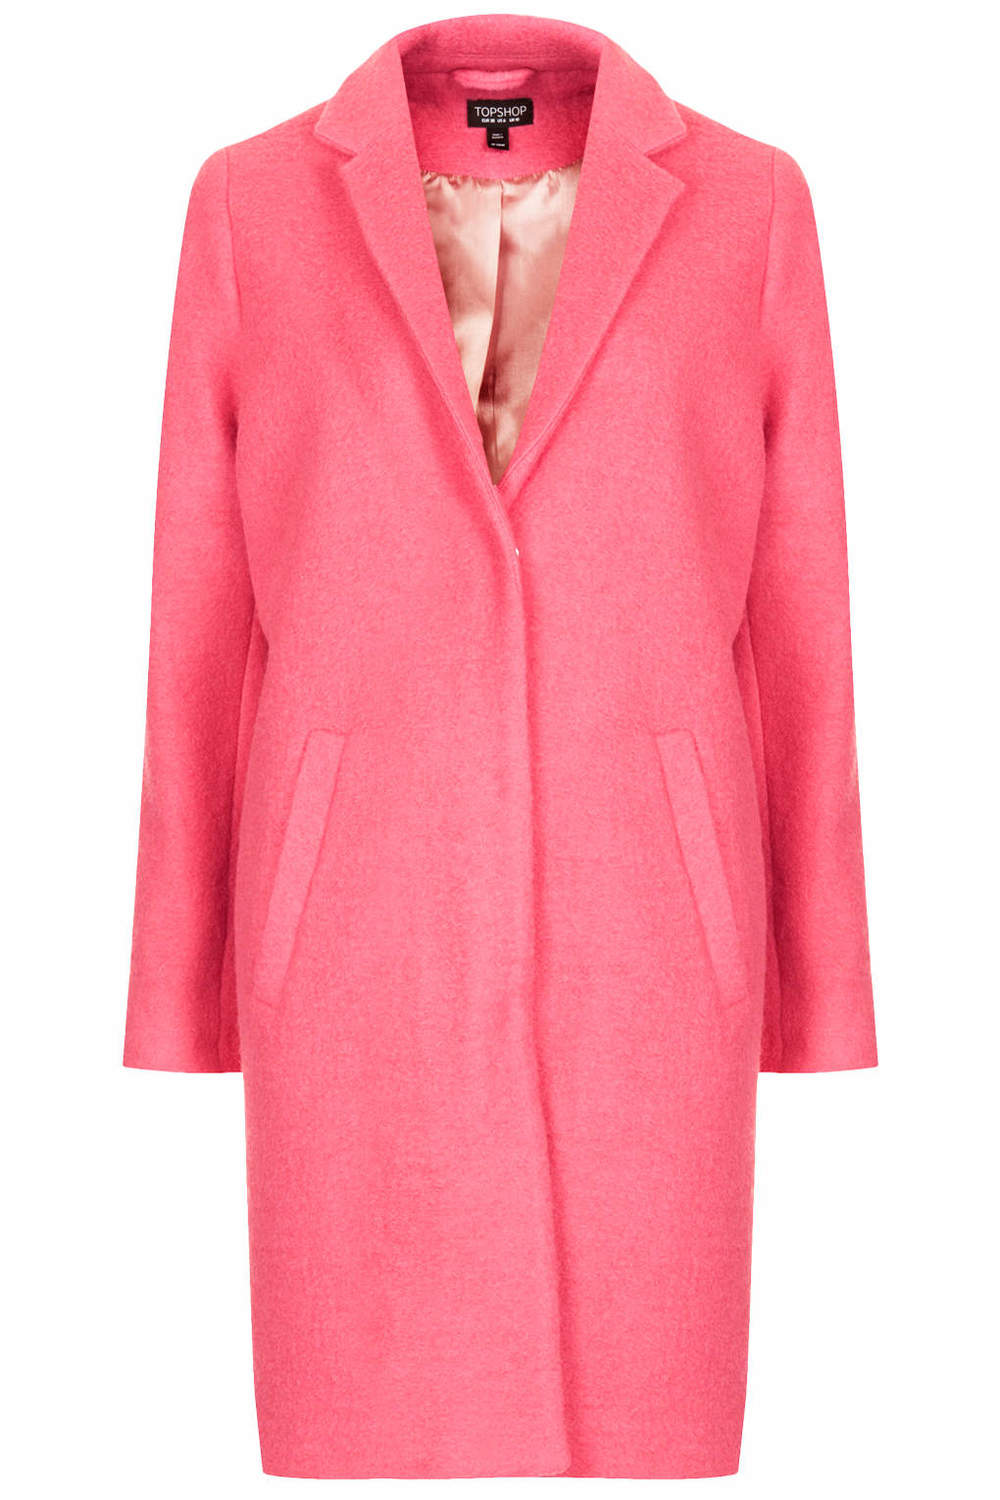 Boiled Wool boyfriend coat. Topshop. $196.